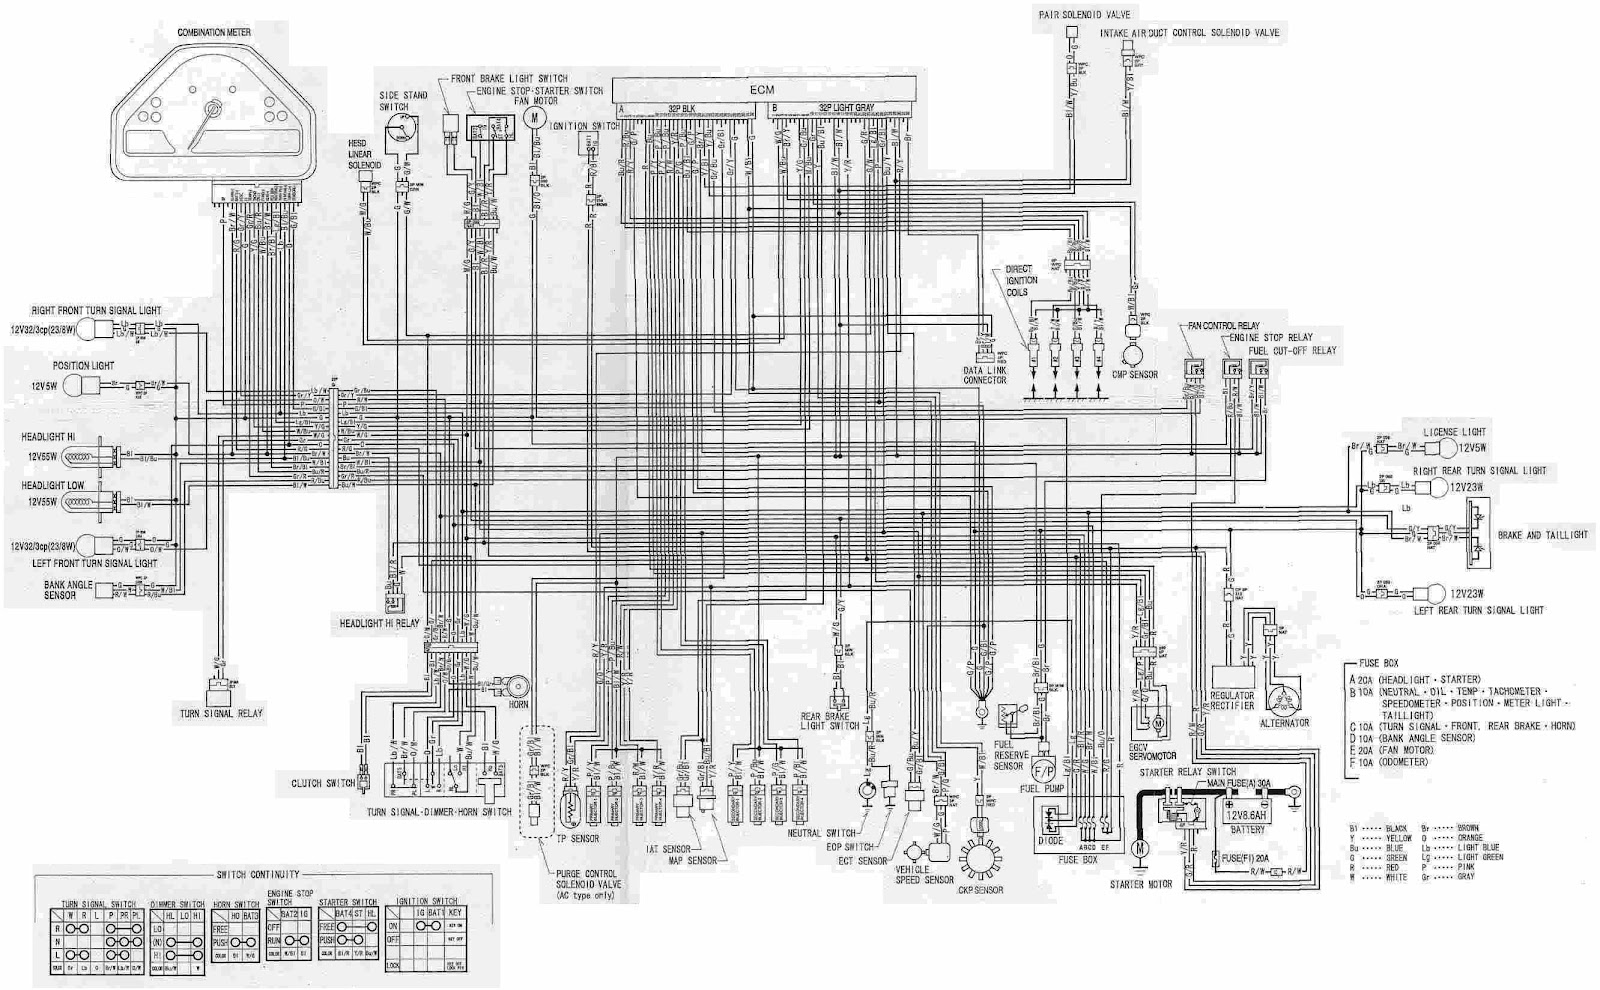 Wiring Diagram For Honda Motorcycle : J cc motorcycle wiring diagram free engine image for